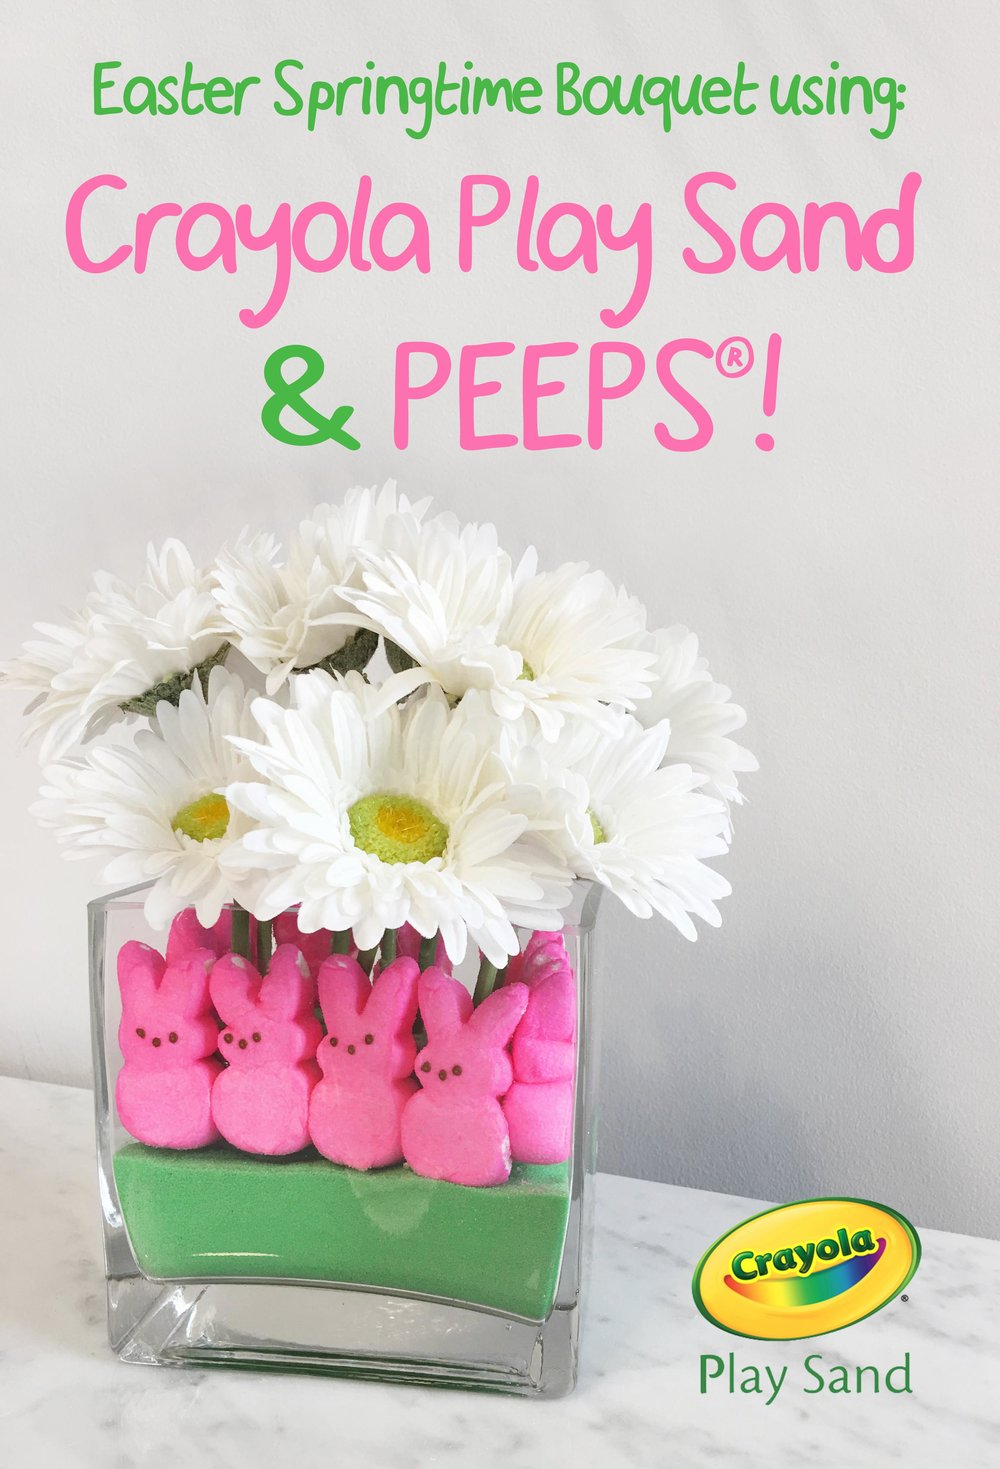 Crayola_Play_sand_Bouquet_with_Marshmallow_Peeps_cover